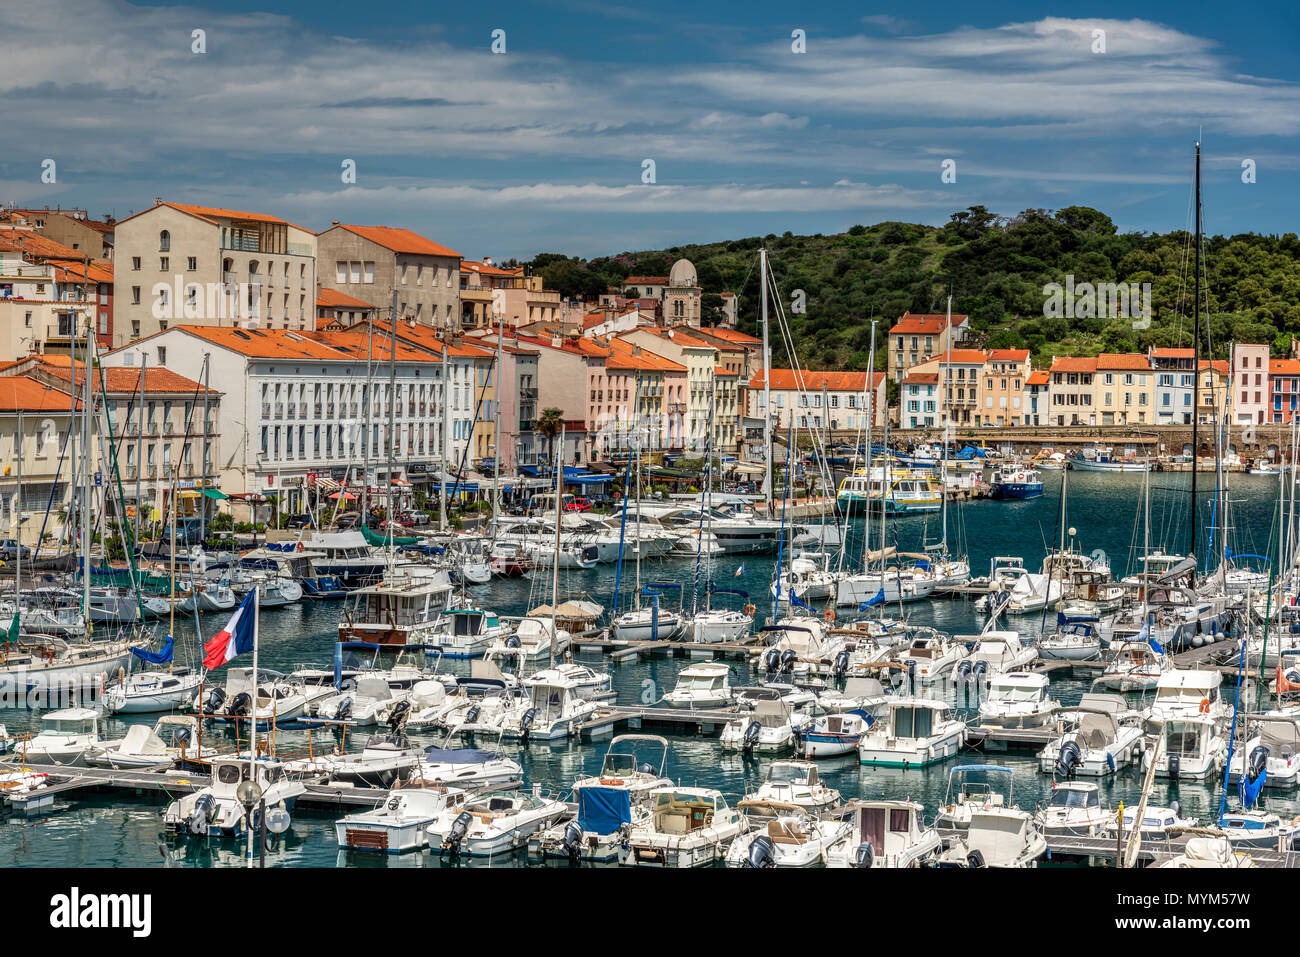 Port-Vendres, Pyrenees-Orientales, France Stock Photo